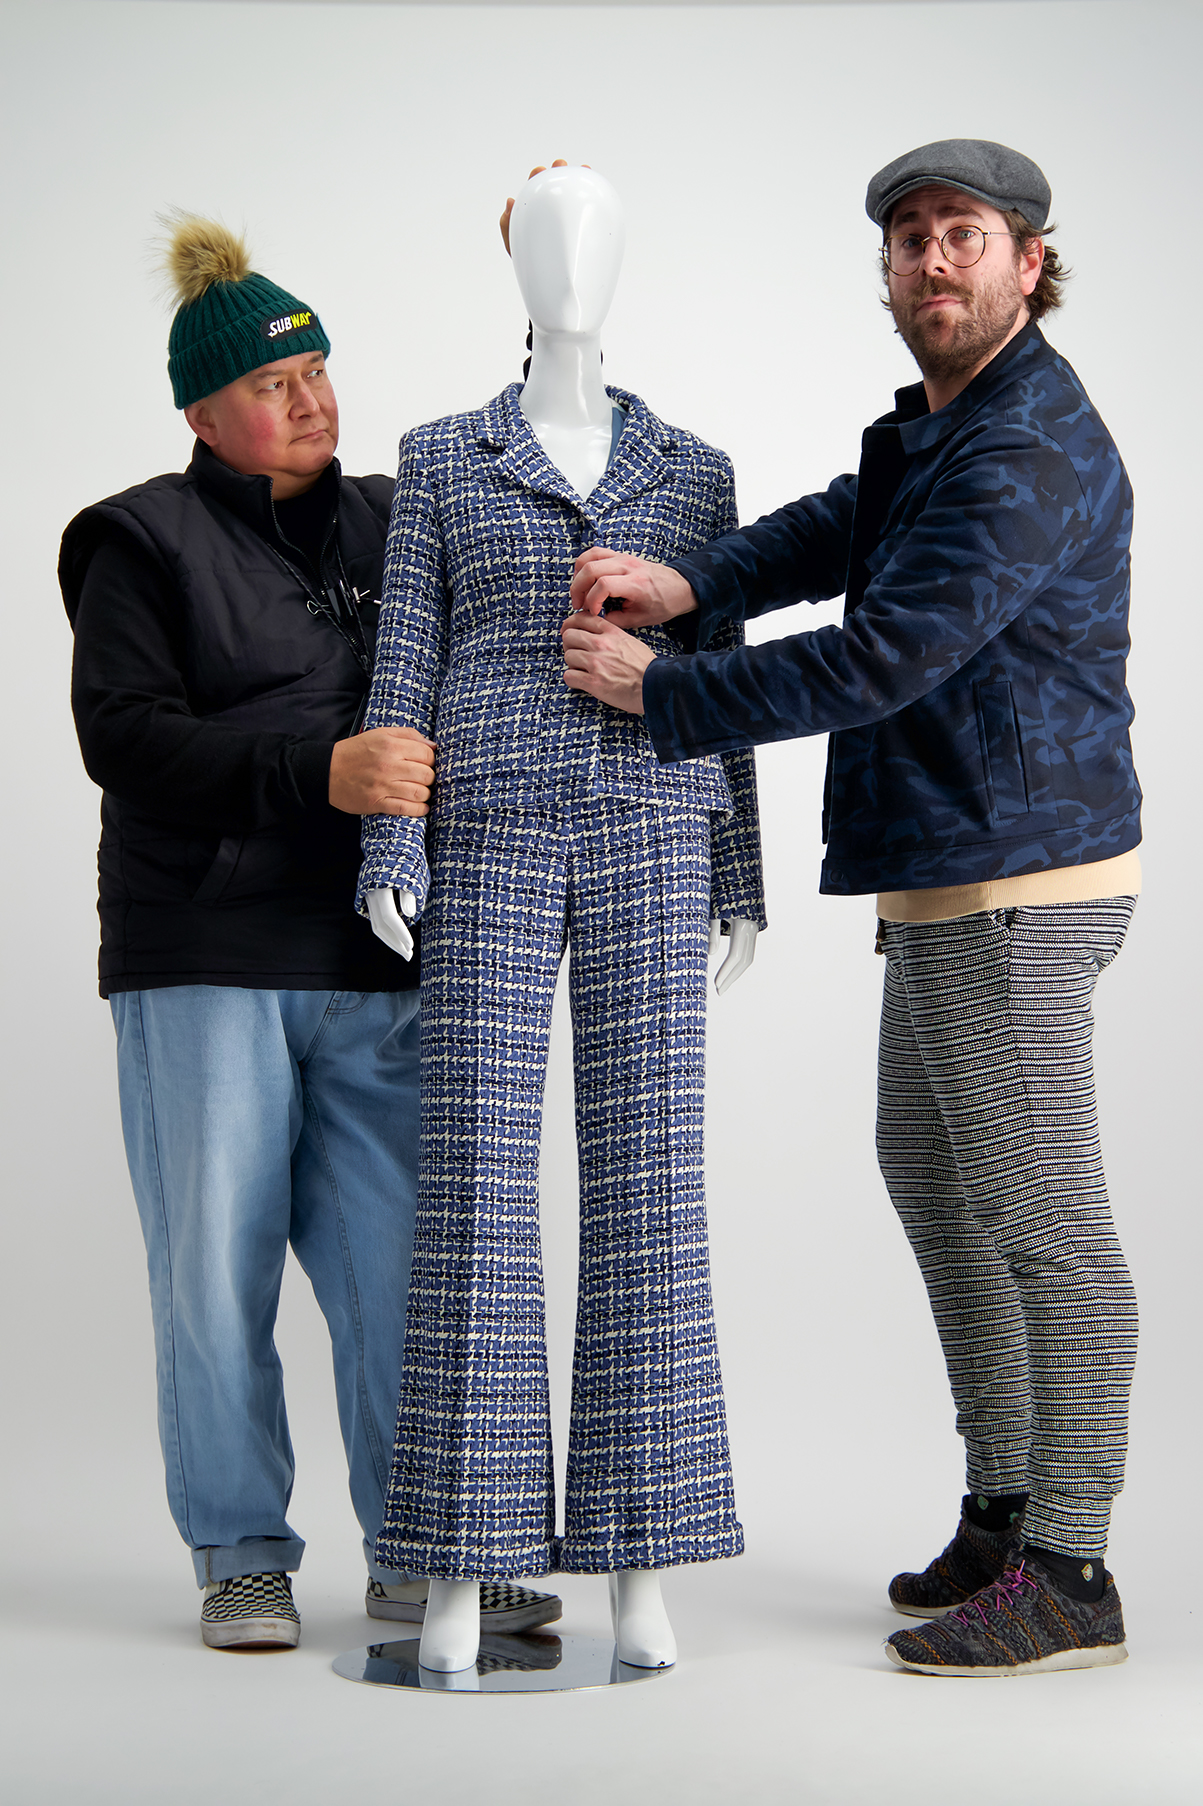 WORLD founder Francis Hooper (L) & WORLD Director & Designer Benny Castles (R) put the finishing touches to an outfit.